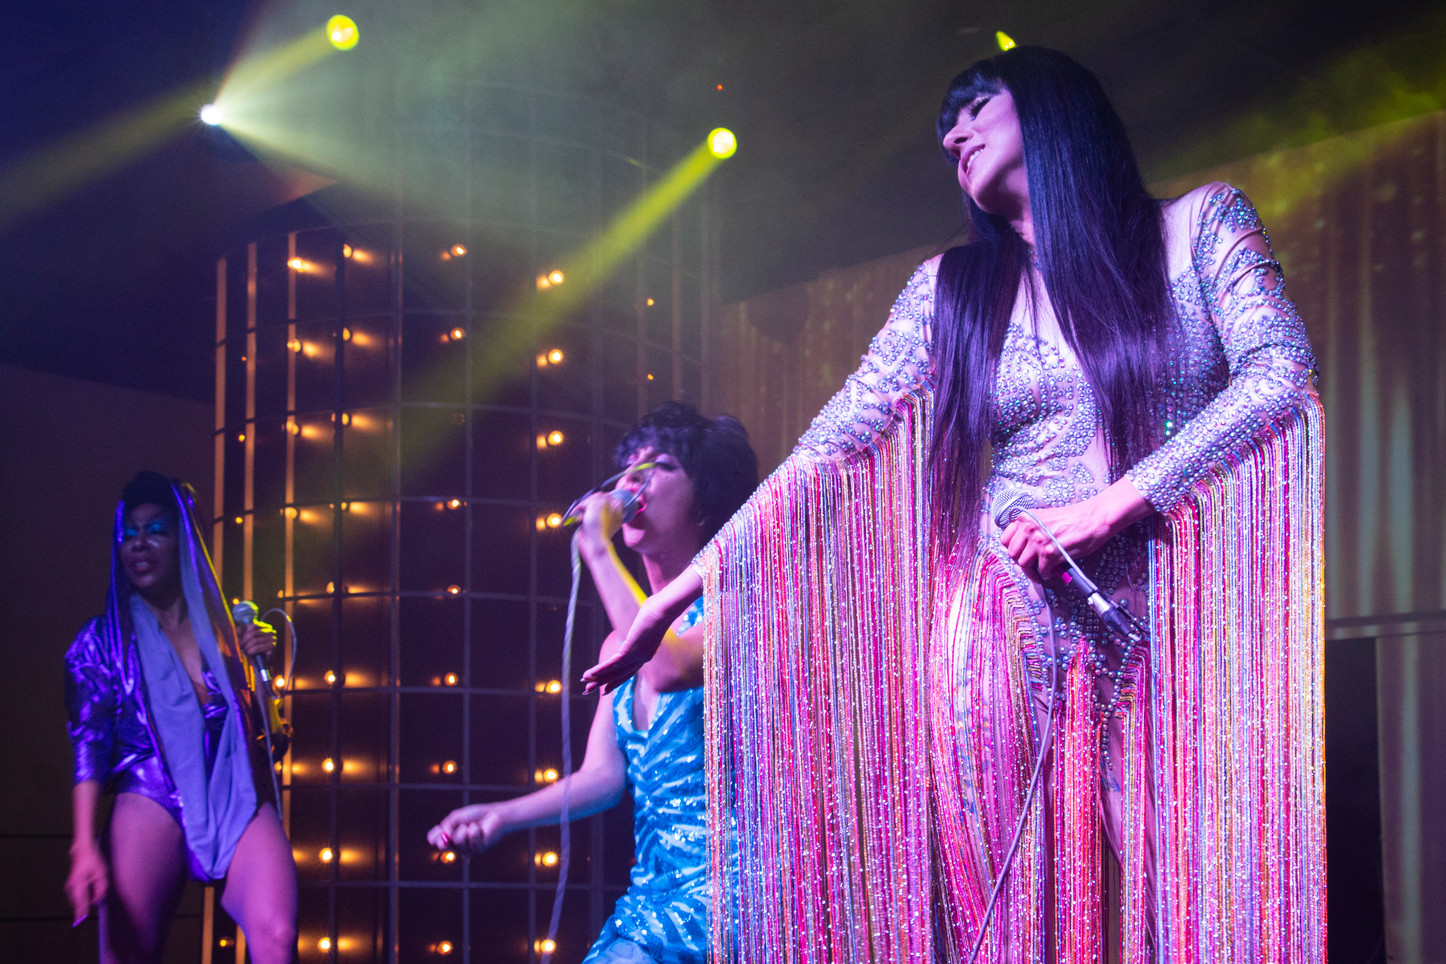 Cher and friends